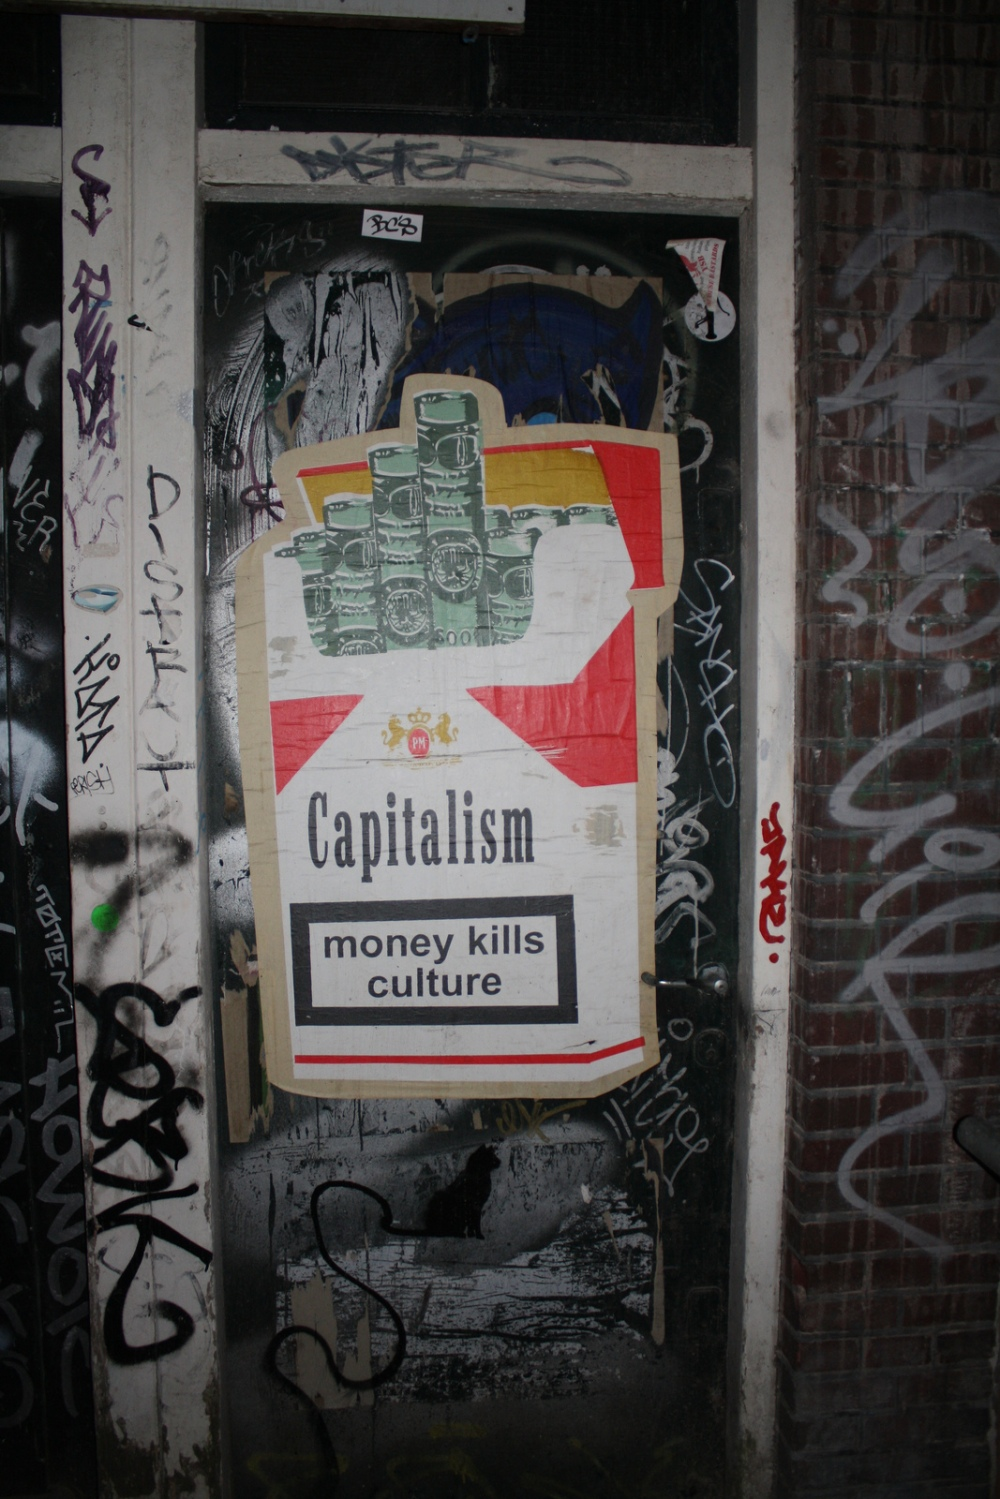 Money kills culture ~ Photo by TheLostSociety, found on Flickr